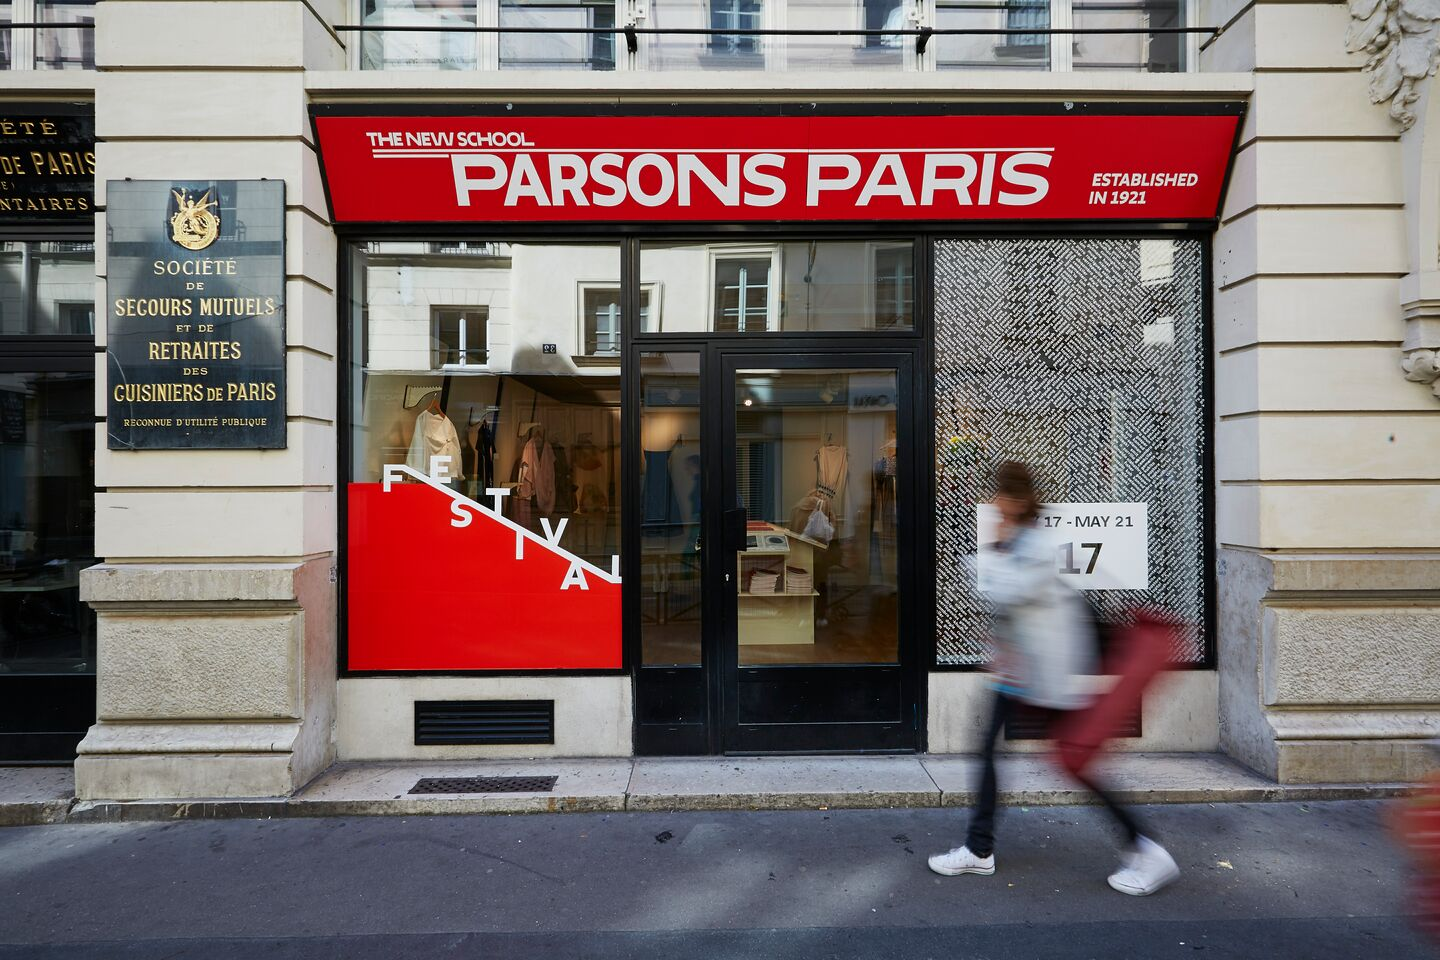 Paris Online The New School News Releases